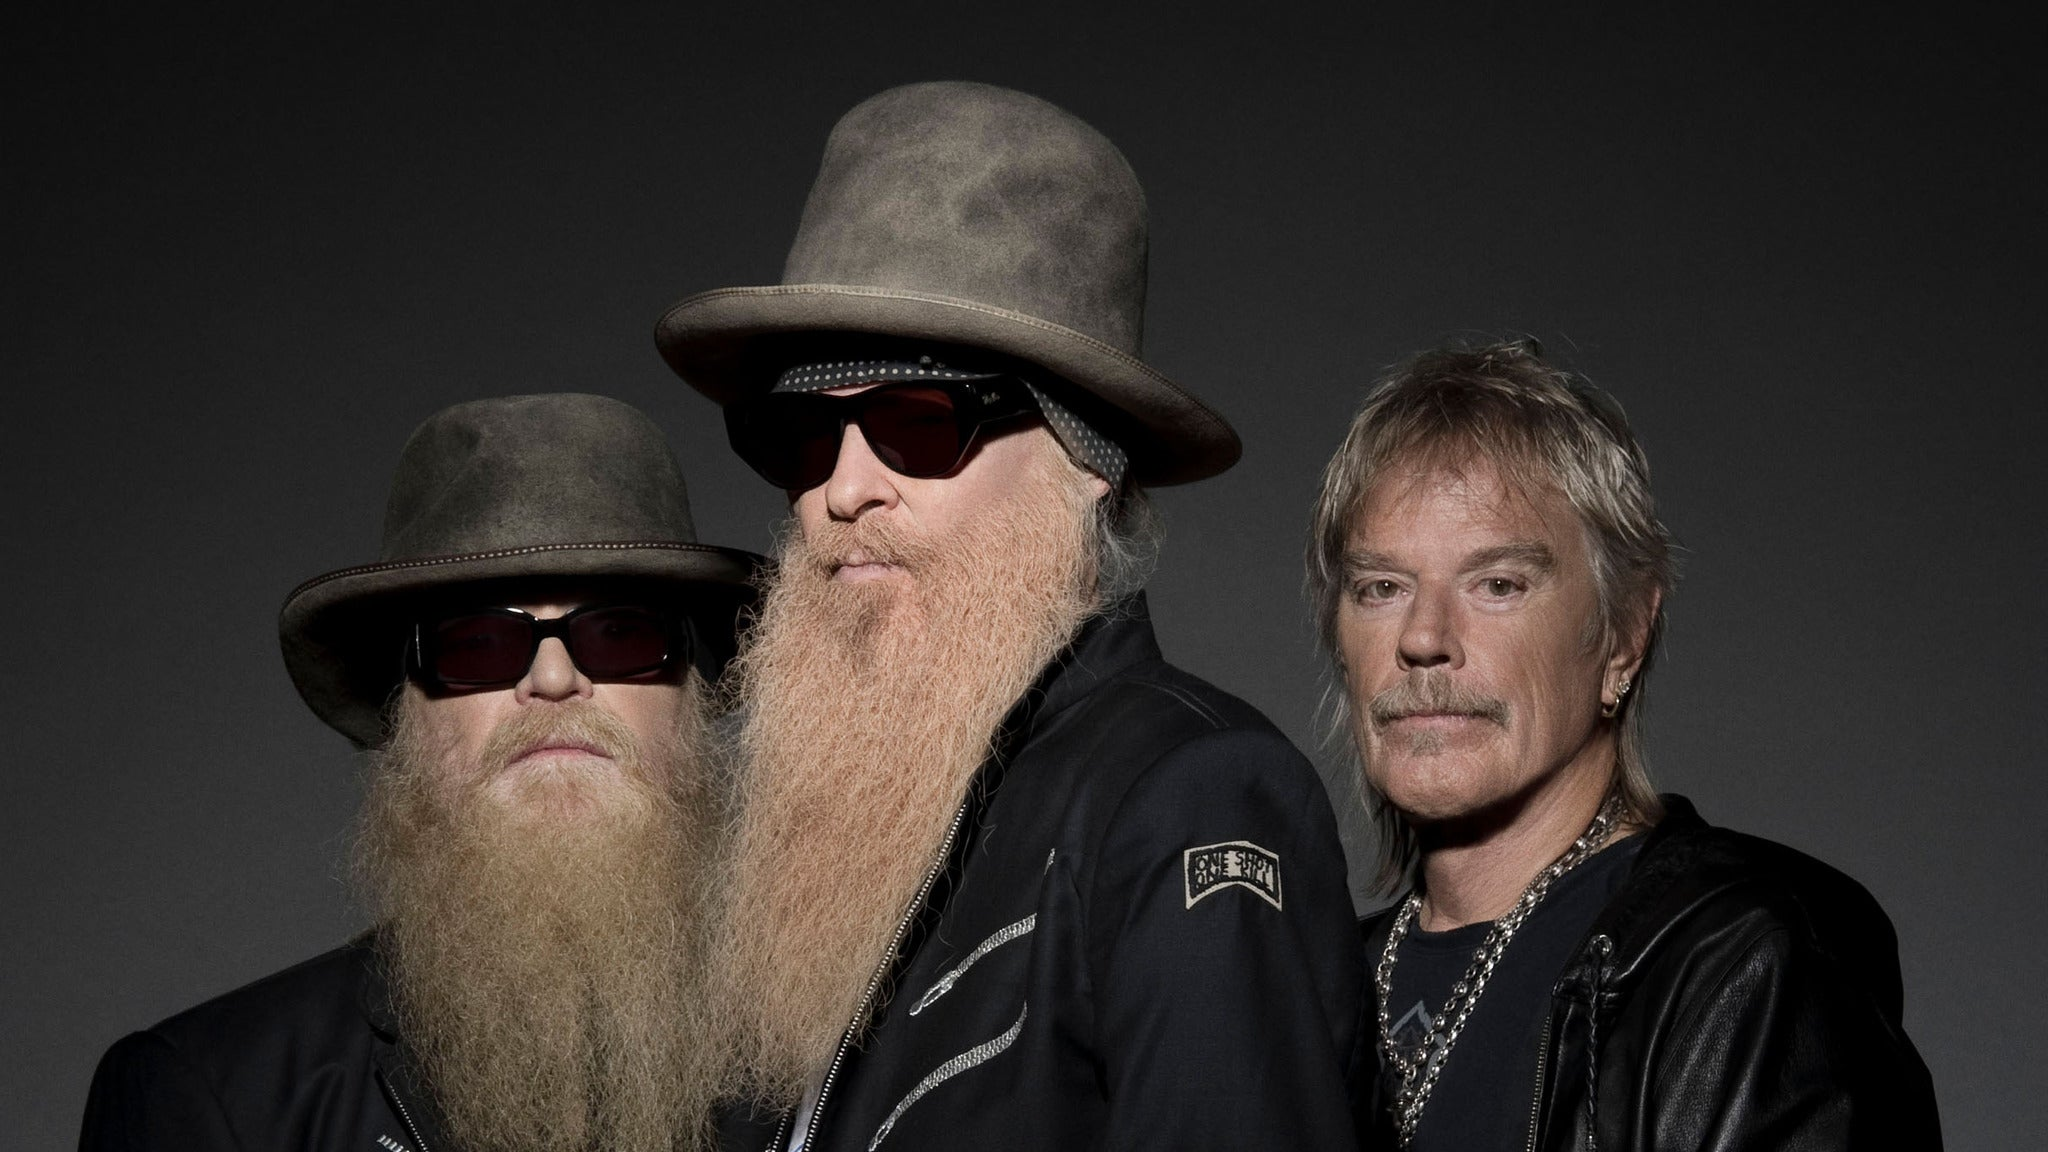 ZZ Top - 50th Anniversary Tour with special guest Cheap Trick